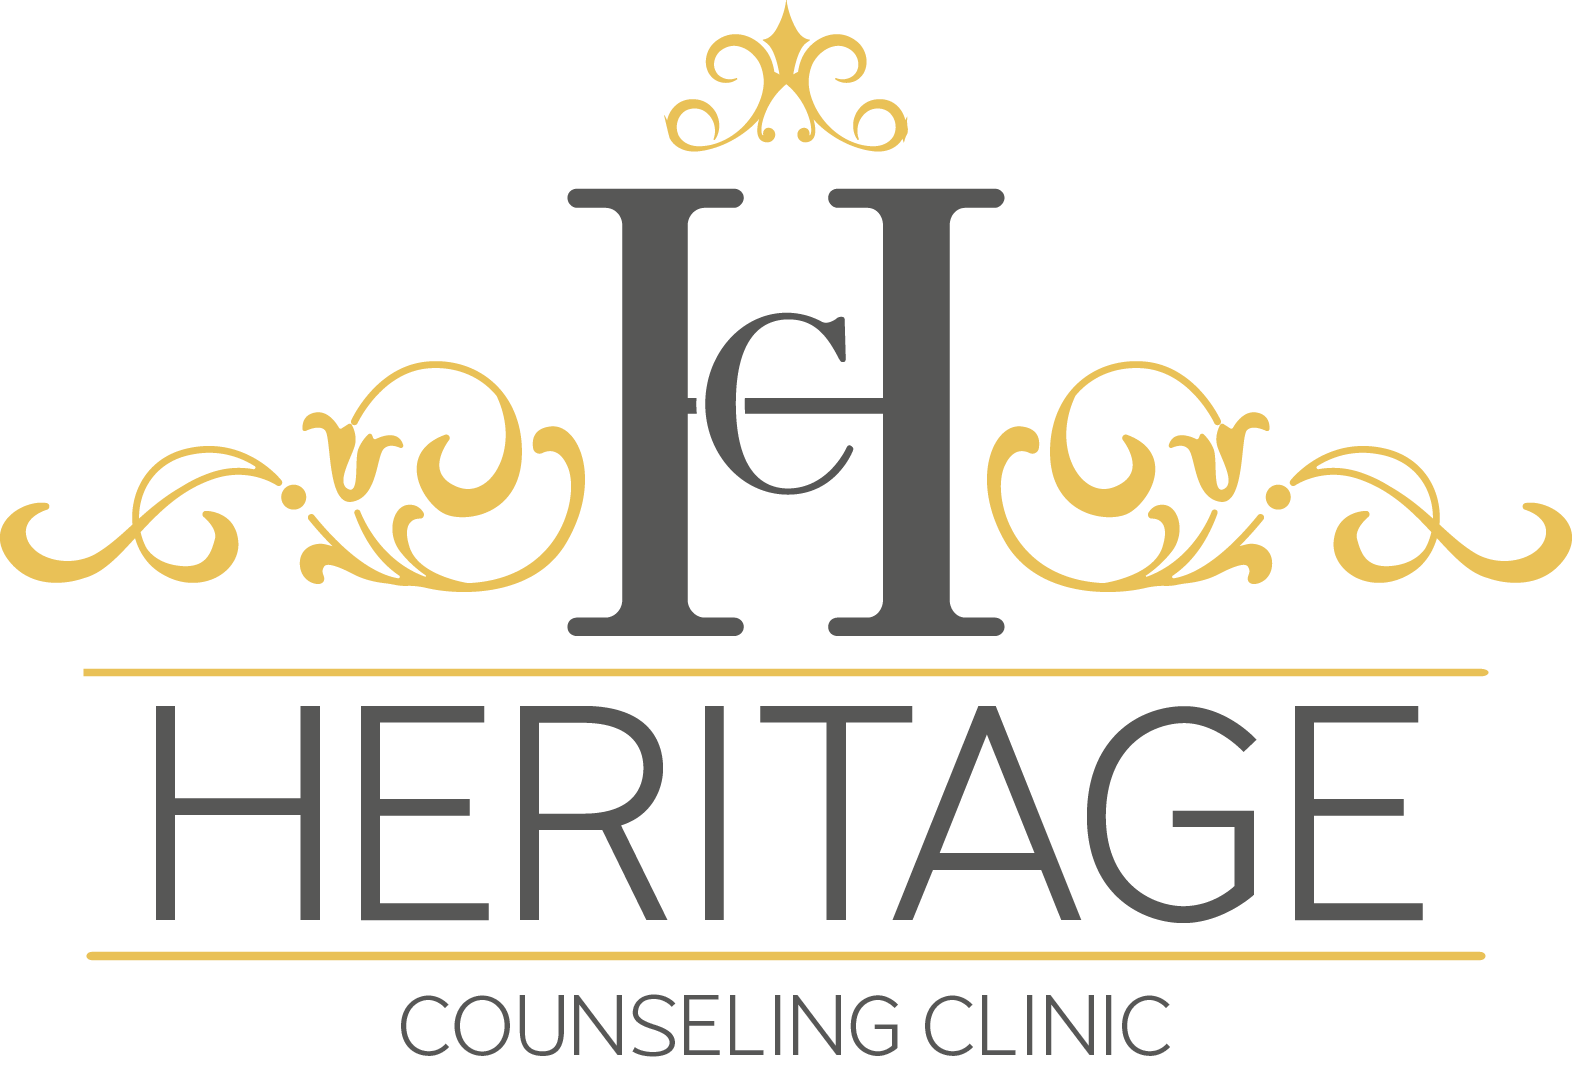 Heritage Counseling Clinic